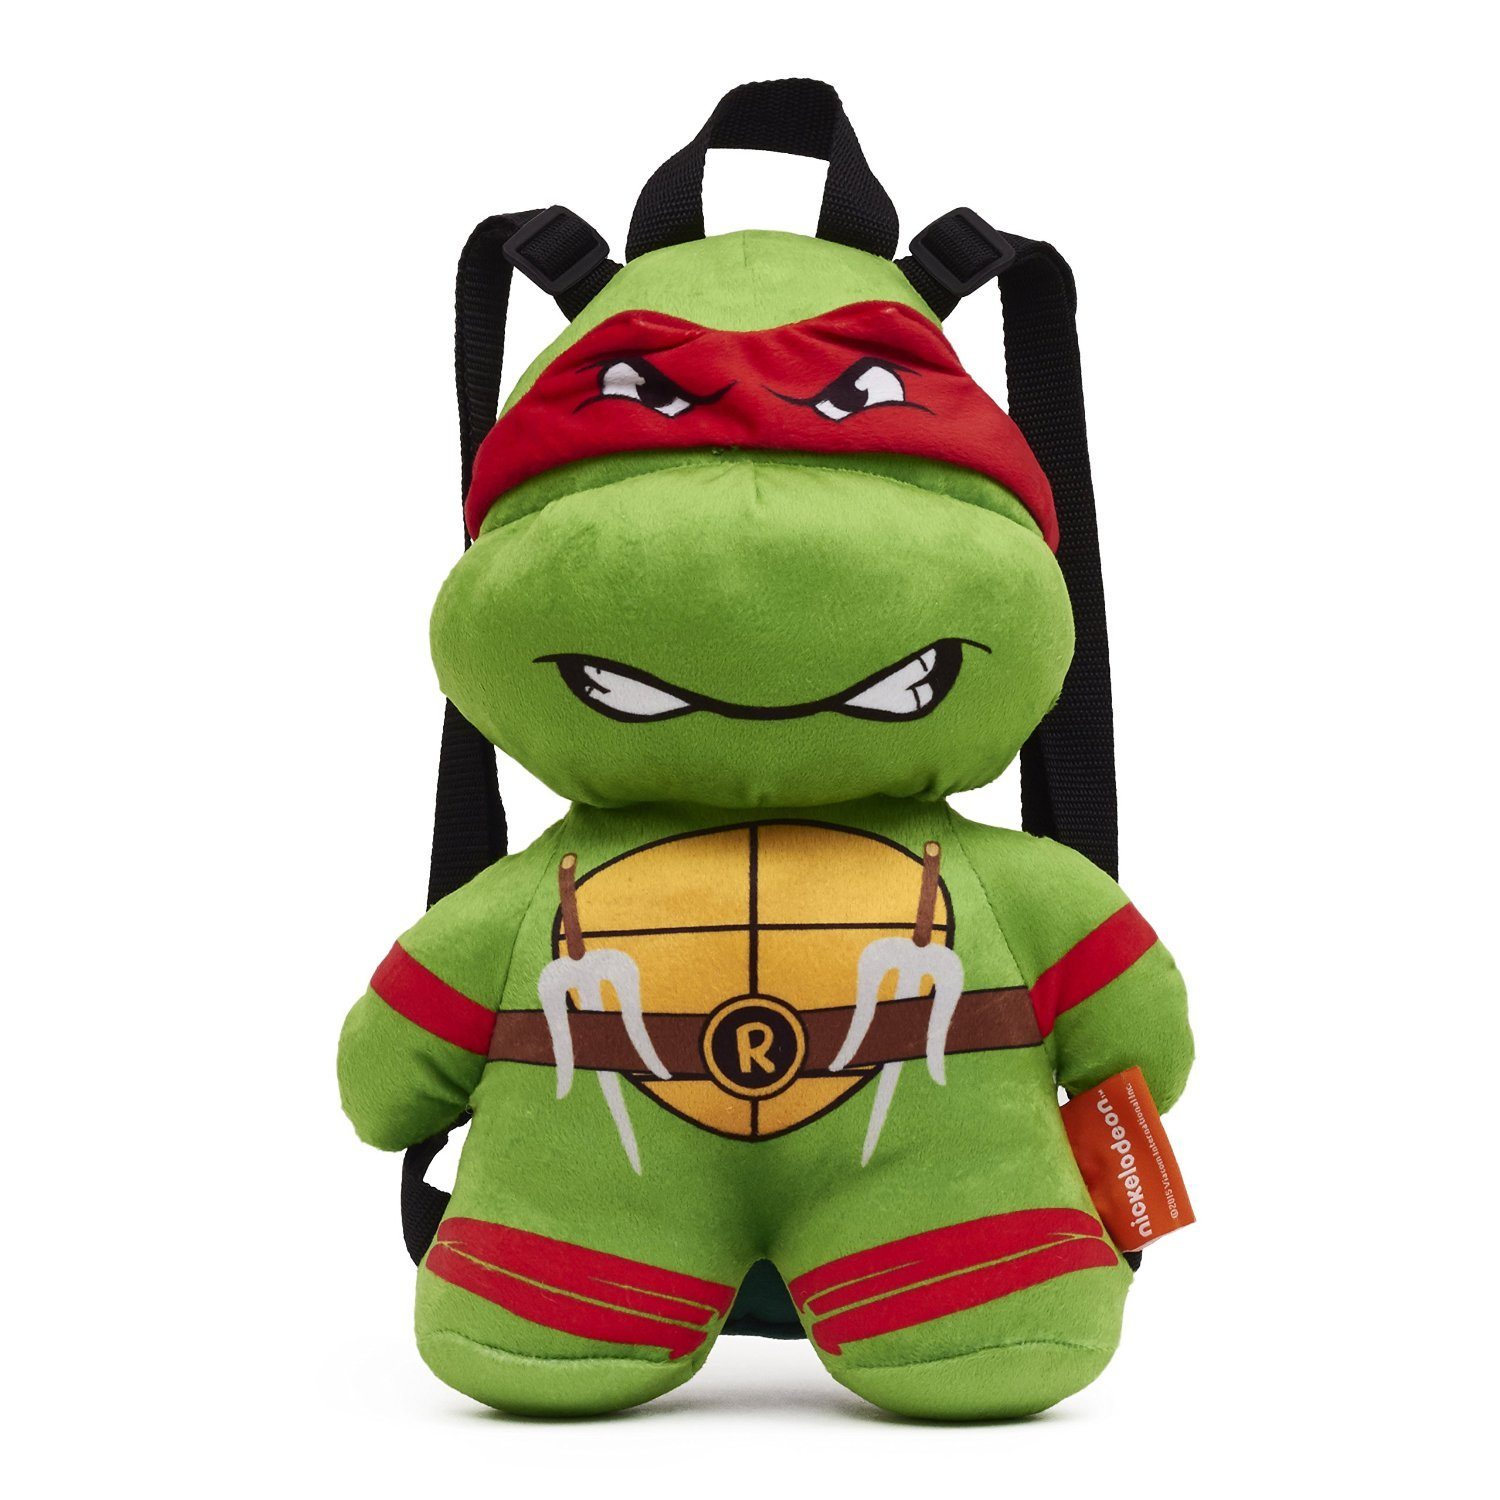 Teenage Mutant Ninja Turtles Raphael Plush Backpack- One Size